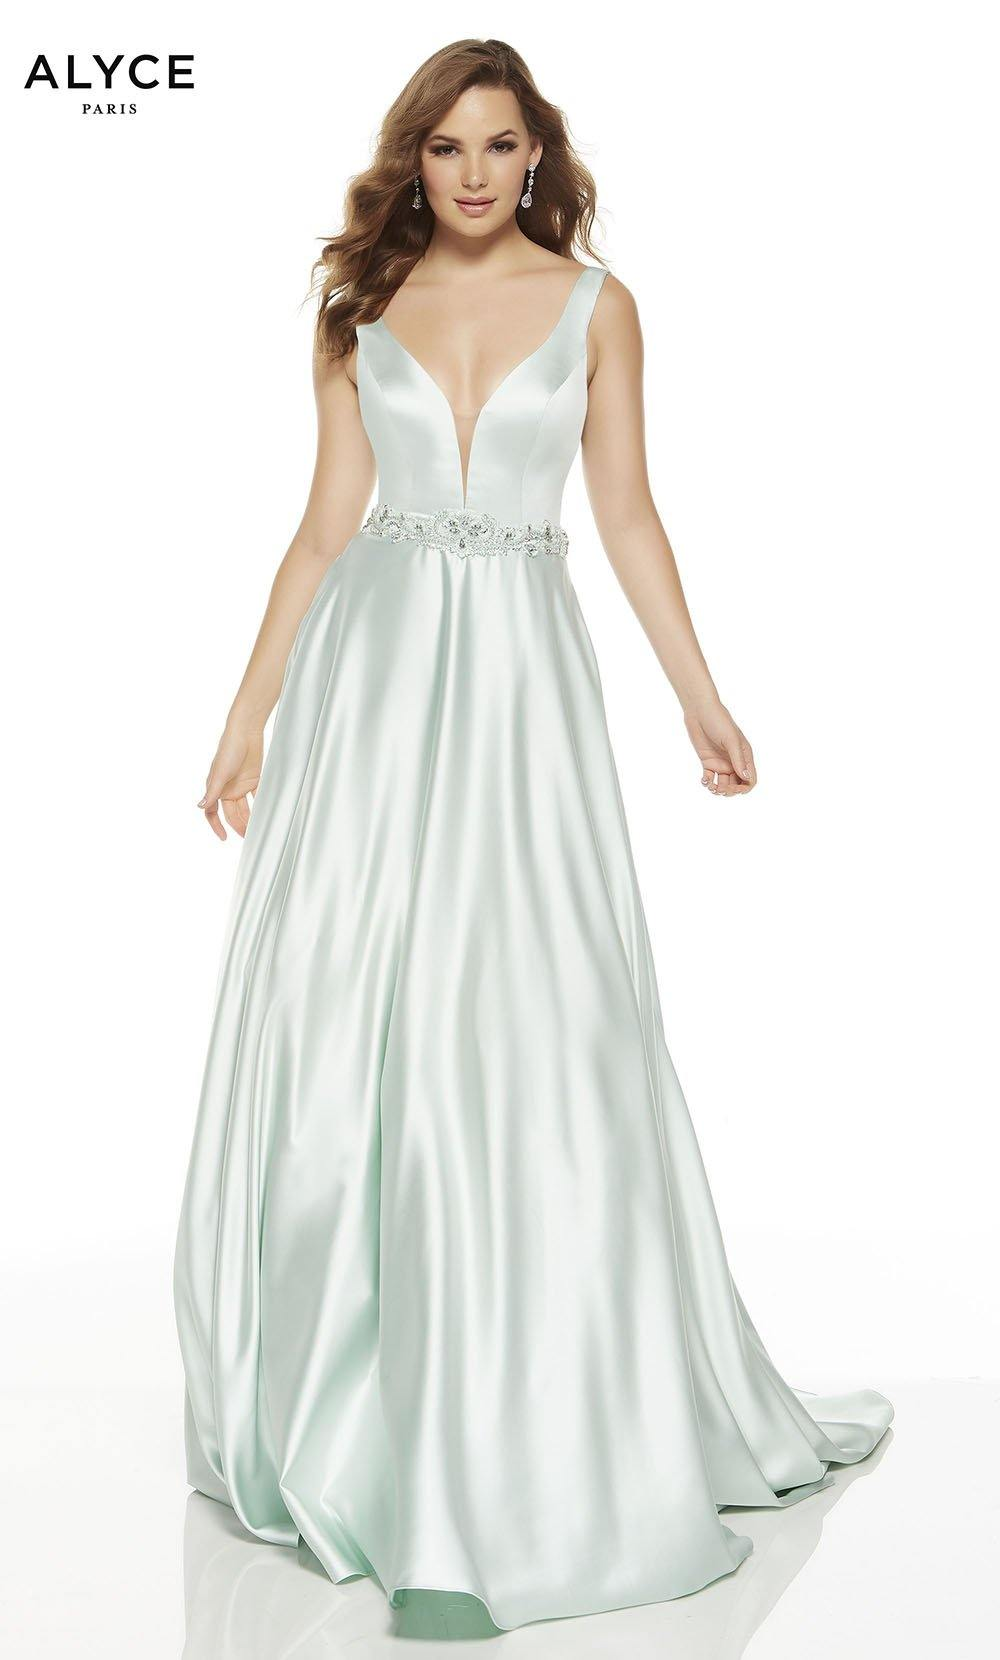 Sea Glass Green luminous satin A line formal dress with a plunging neckline and beaded natural waistline